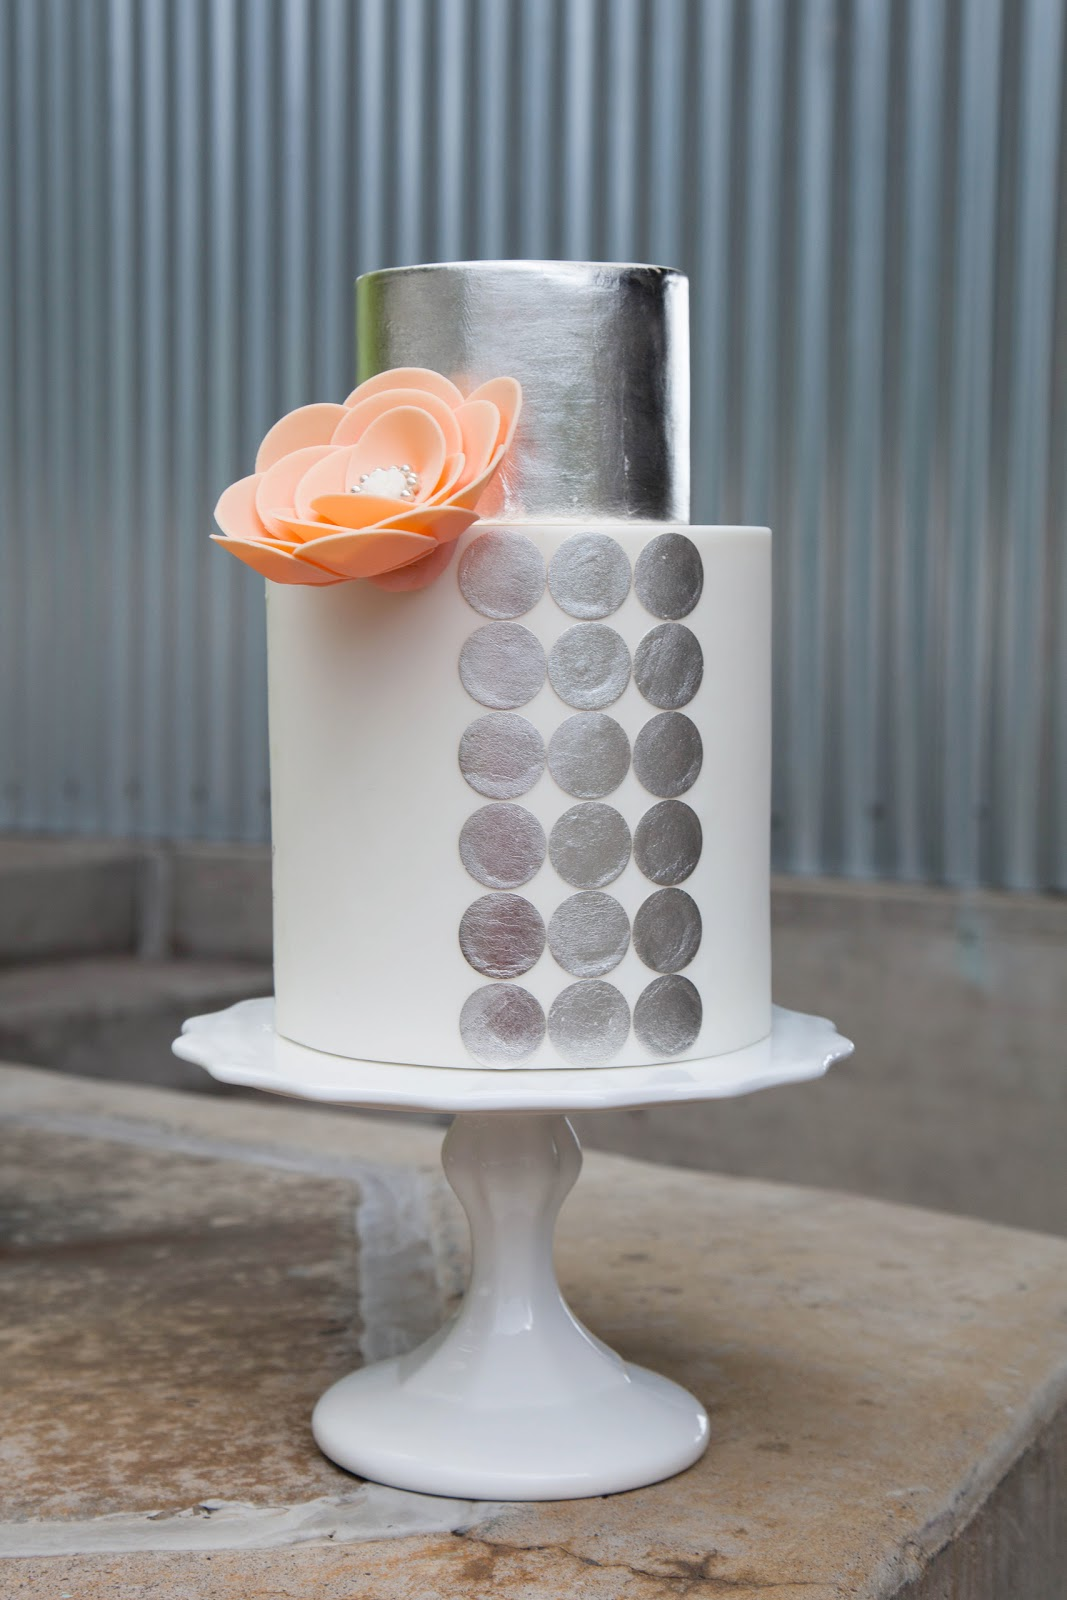 Silver Edible Paint For Decorating Cakes